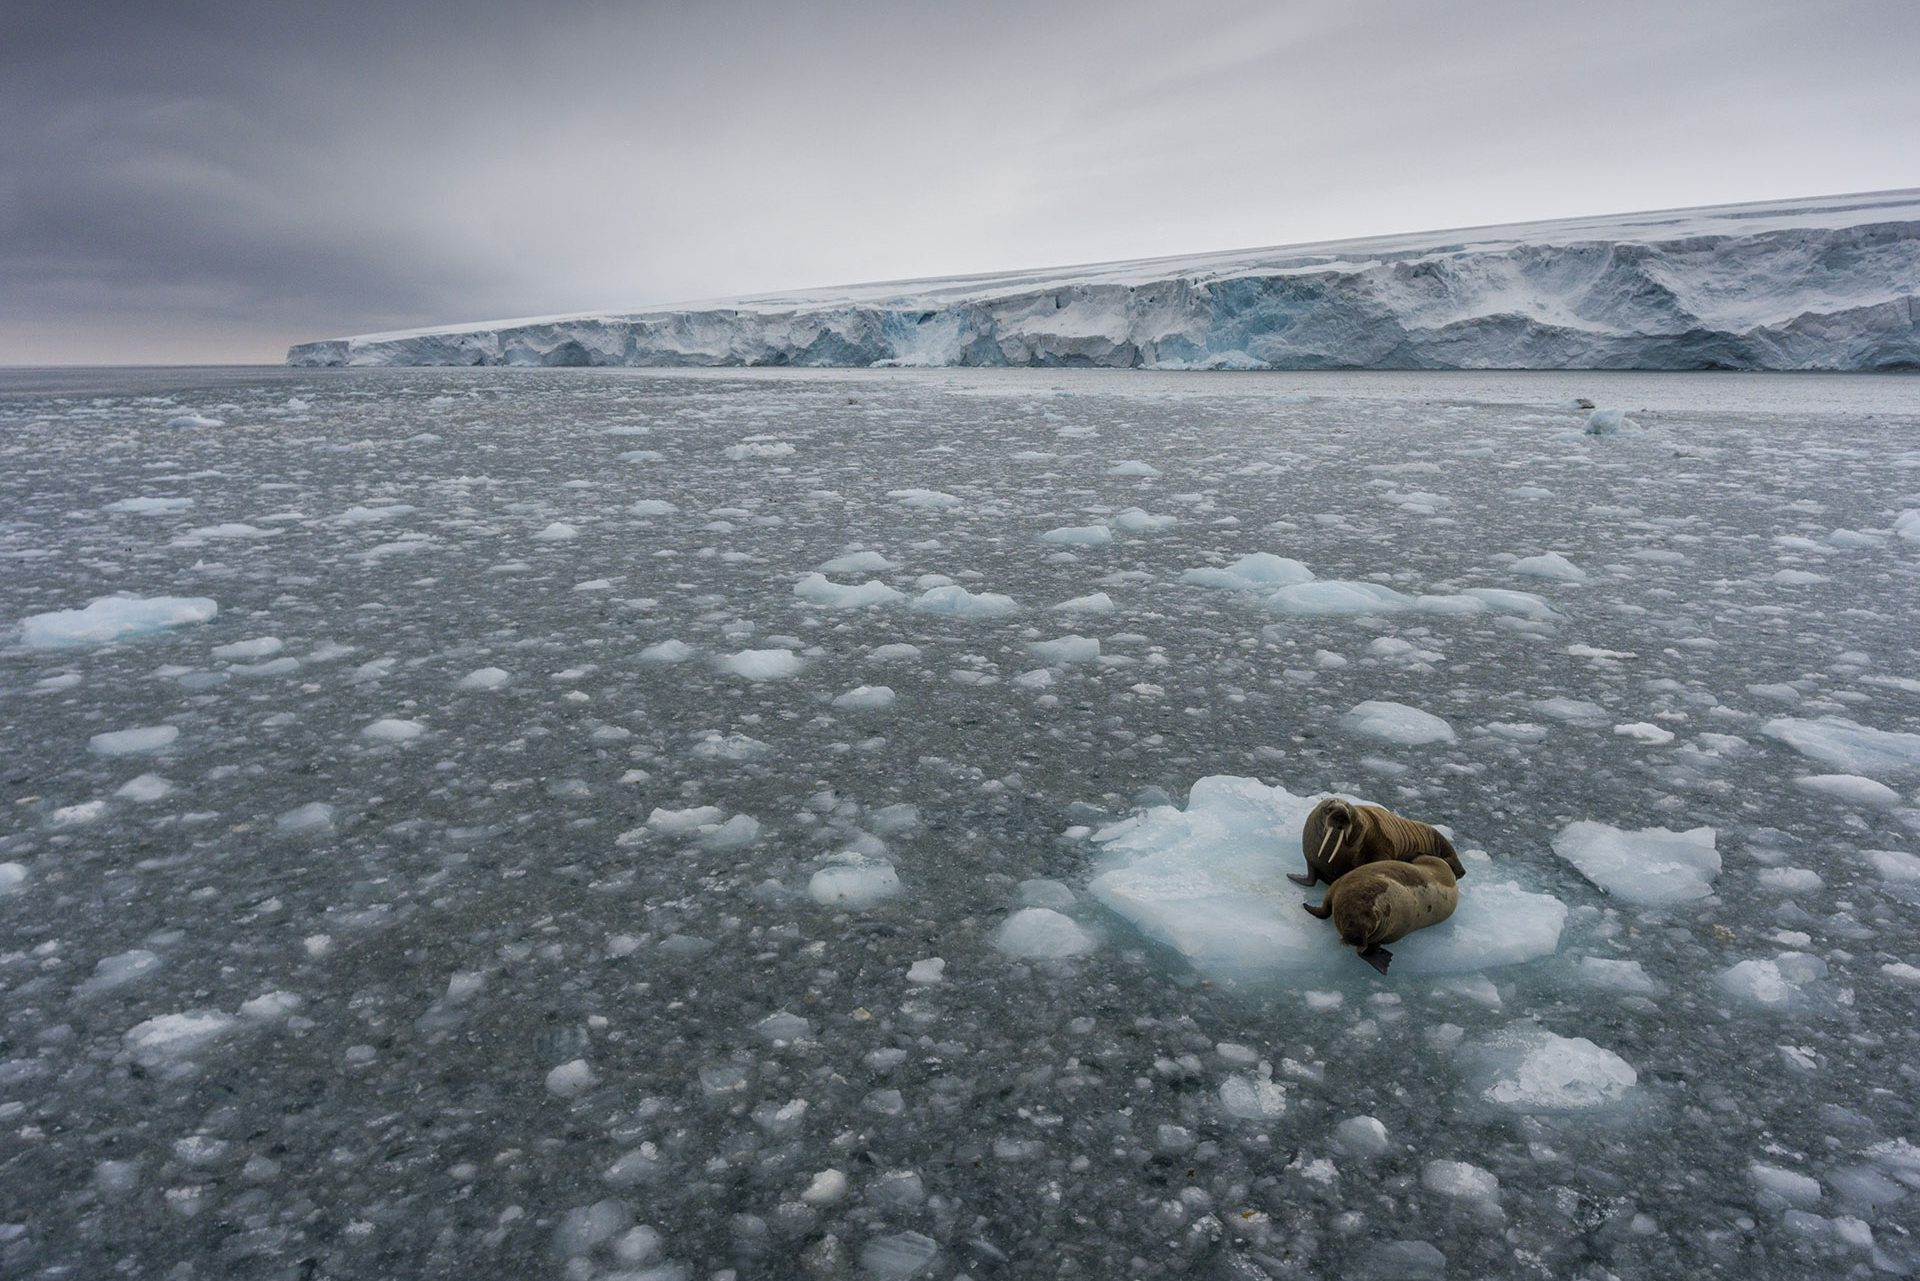 Walruses on ice floe at Kvitøya in Svalbard. © Christian Åslund / Greenpeace